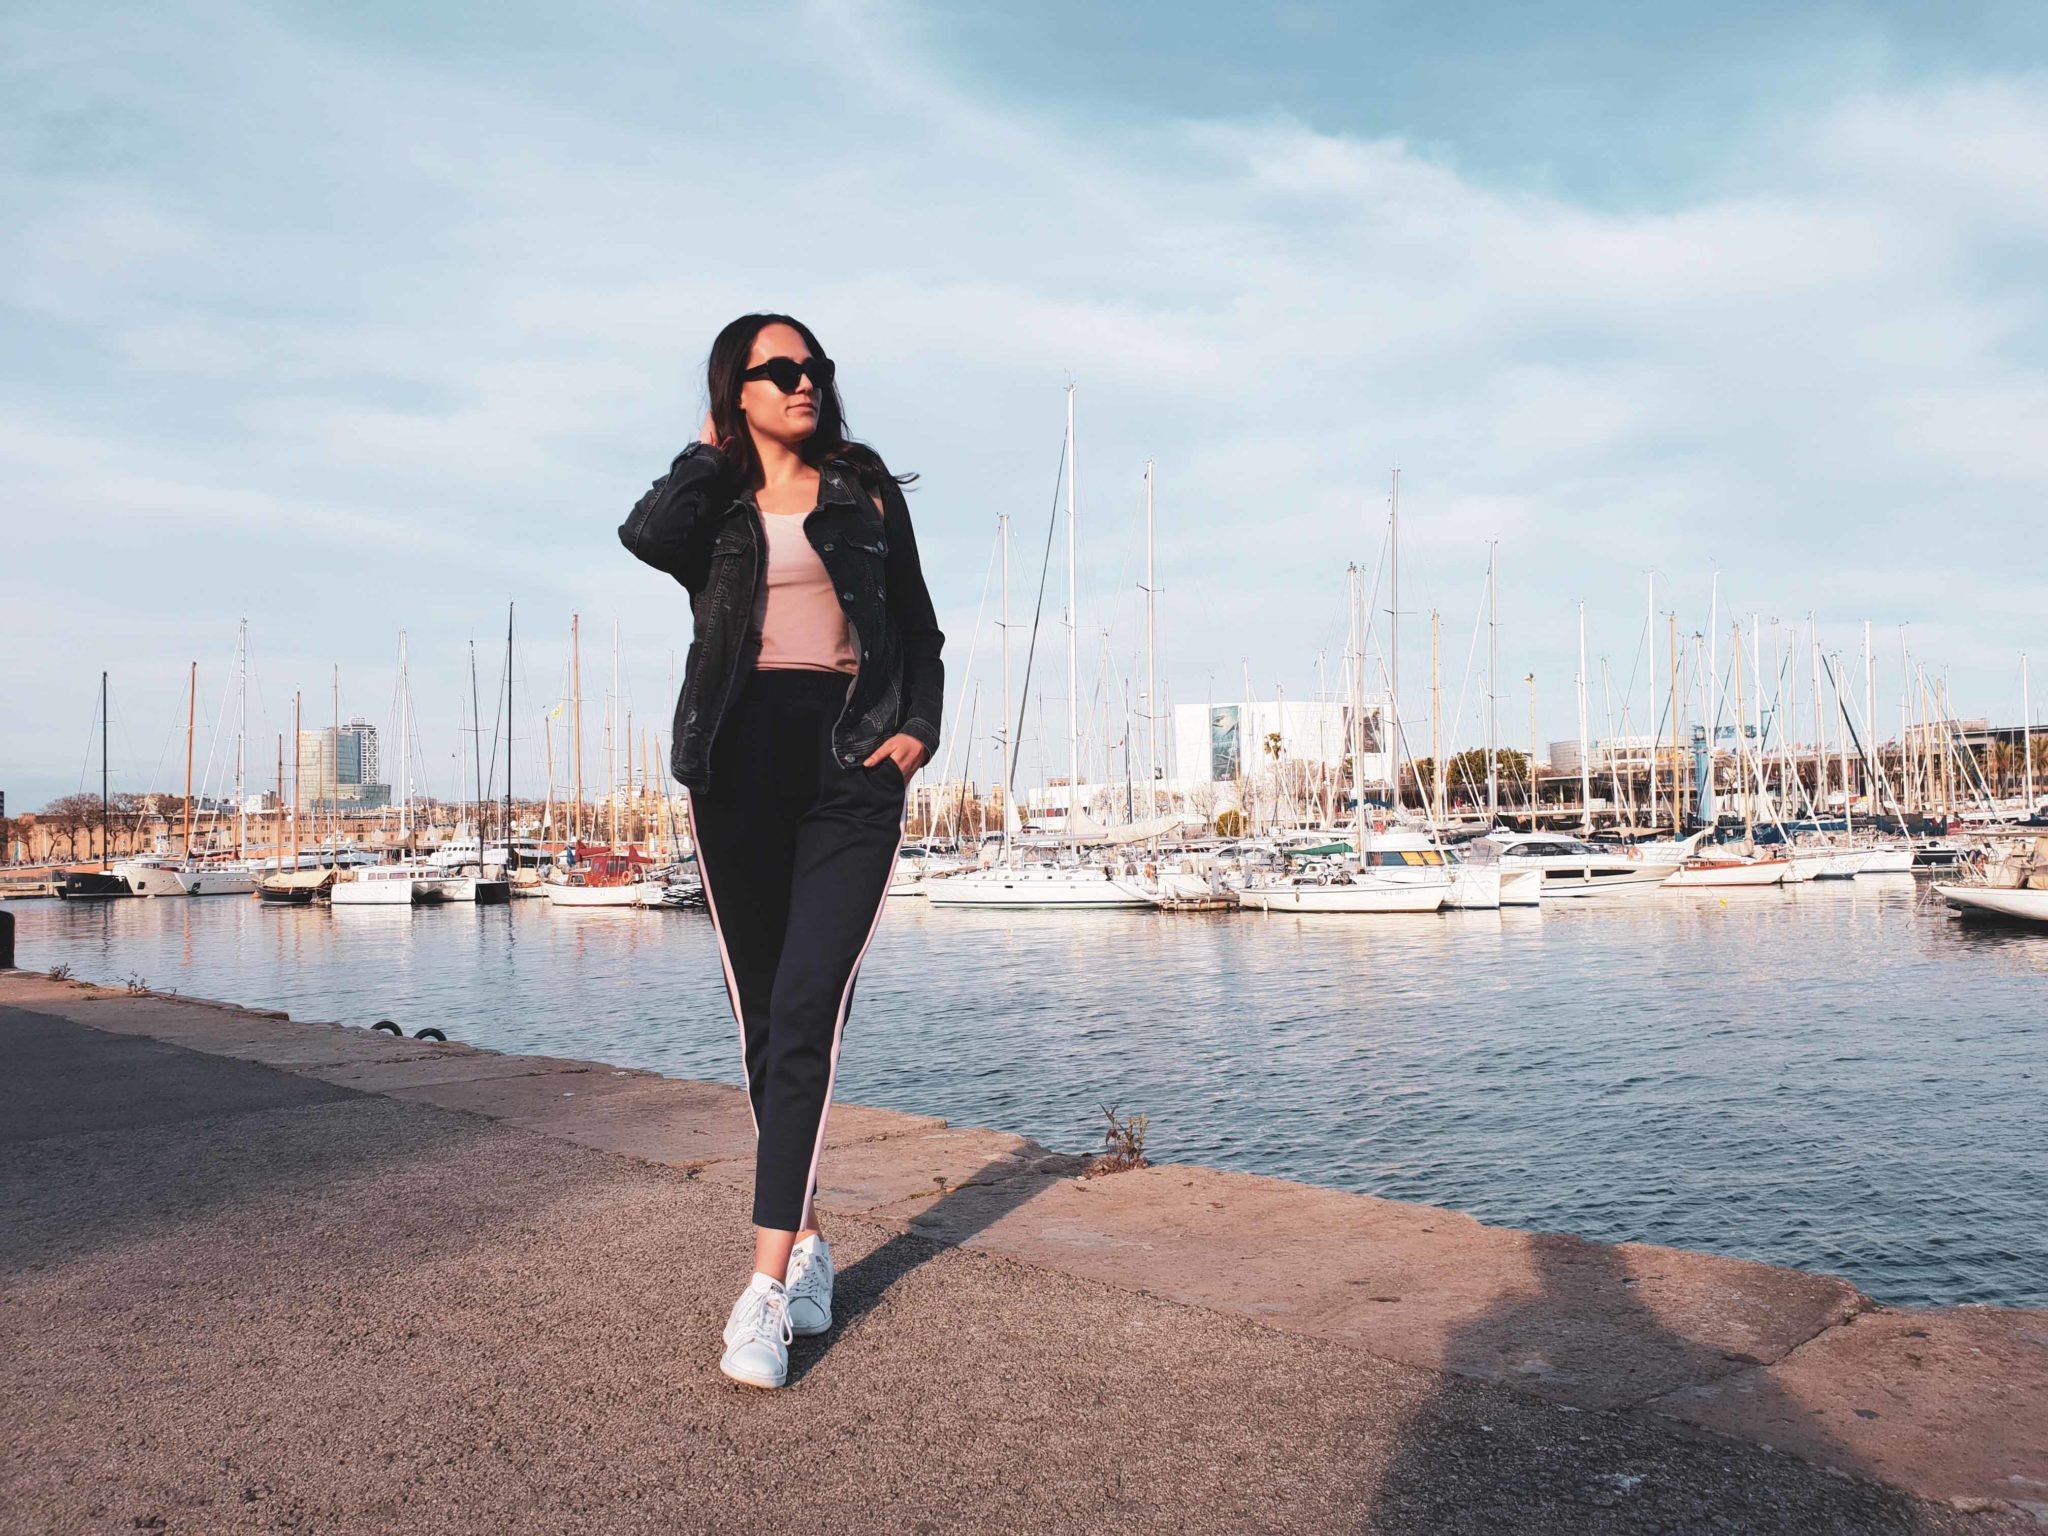 Barcelona travel guide by Michaella and Lina from Bulgarian lifestyle blog Quite a Looker / Port Vell